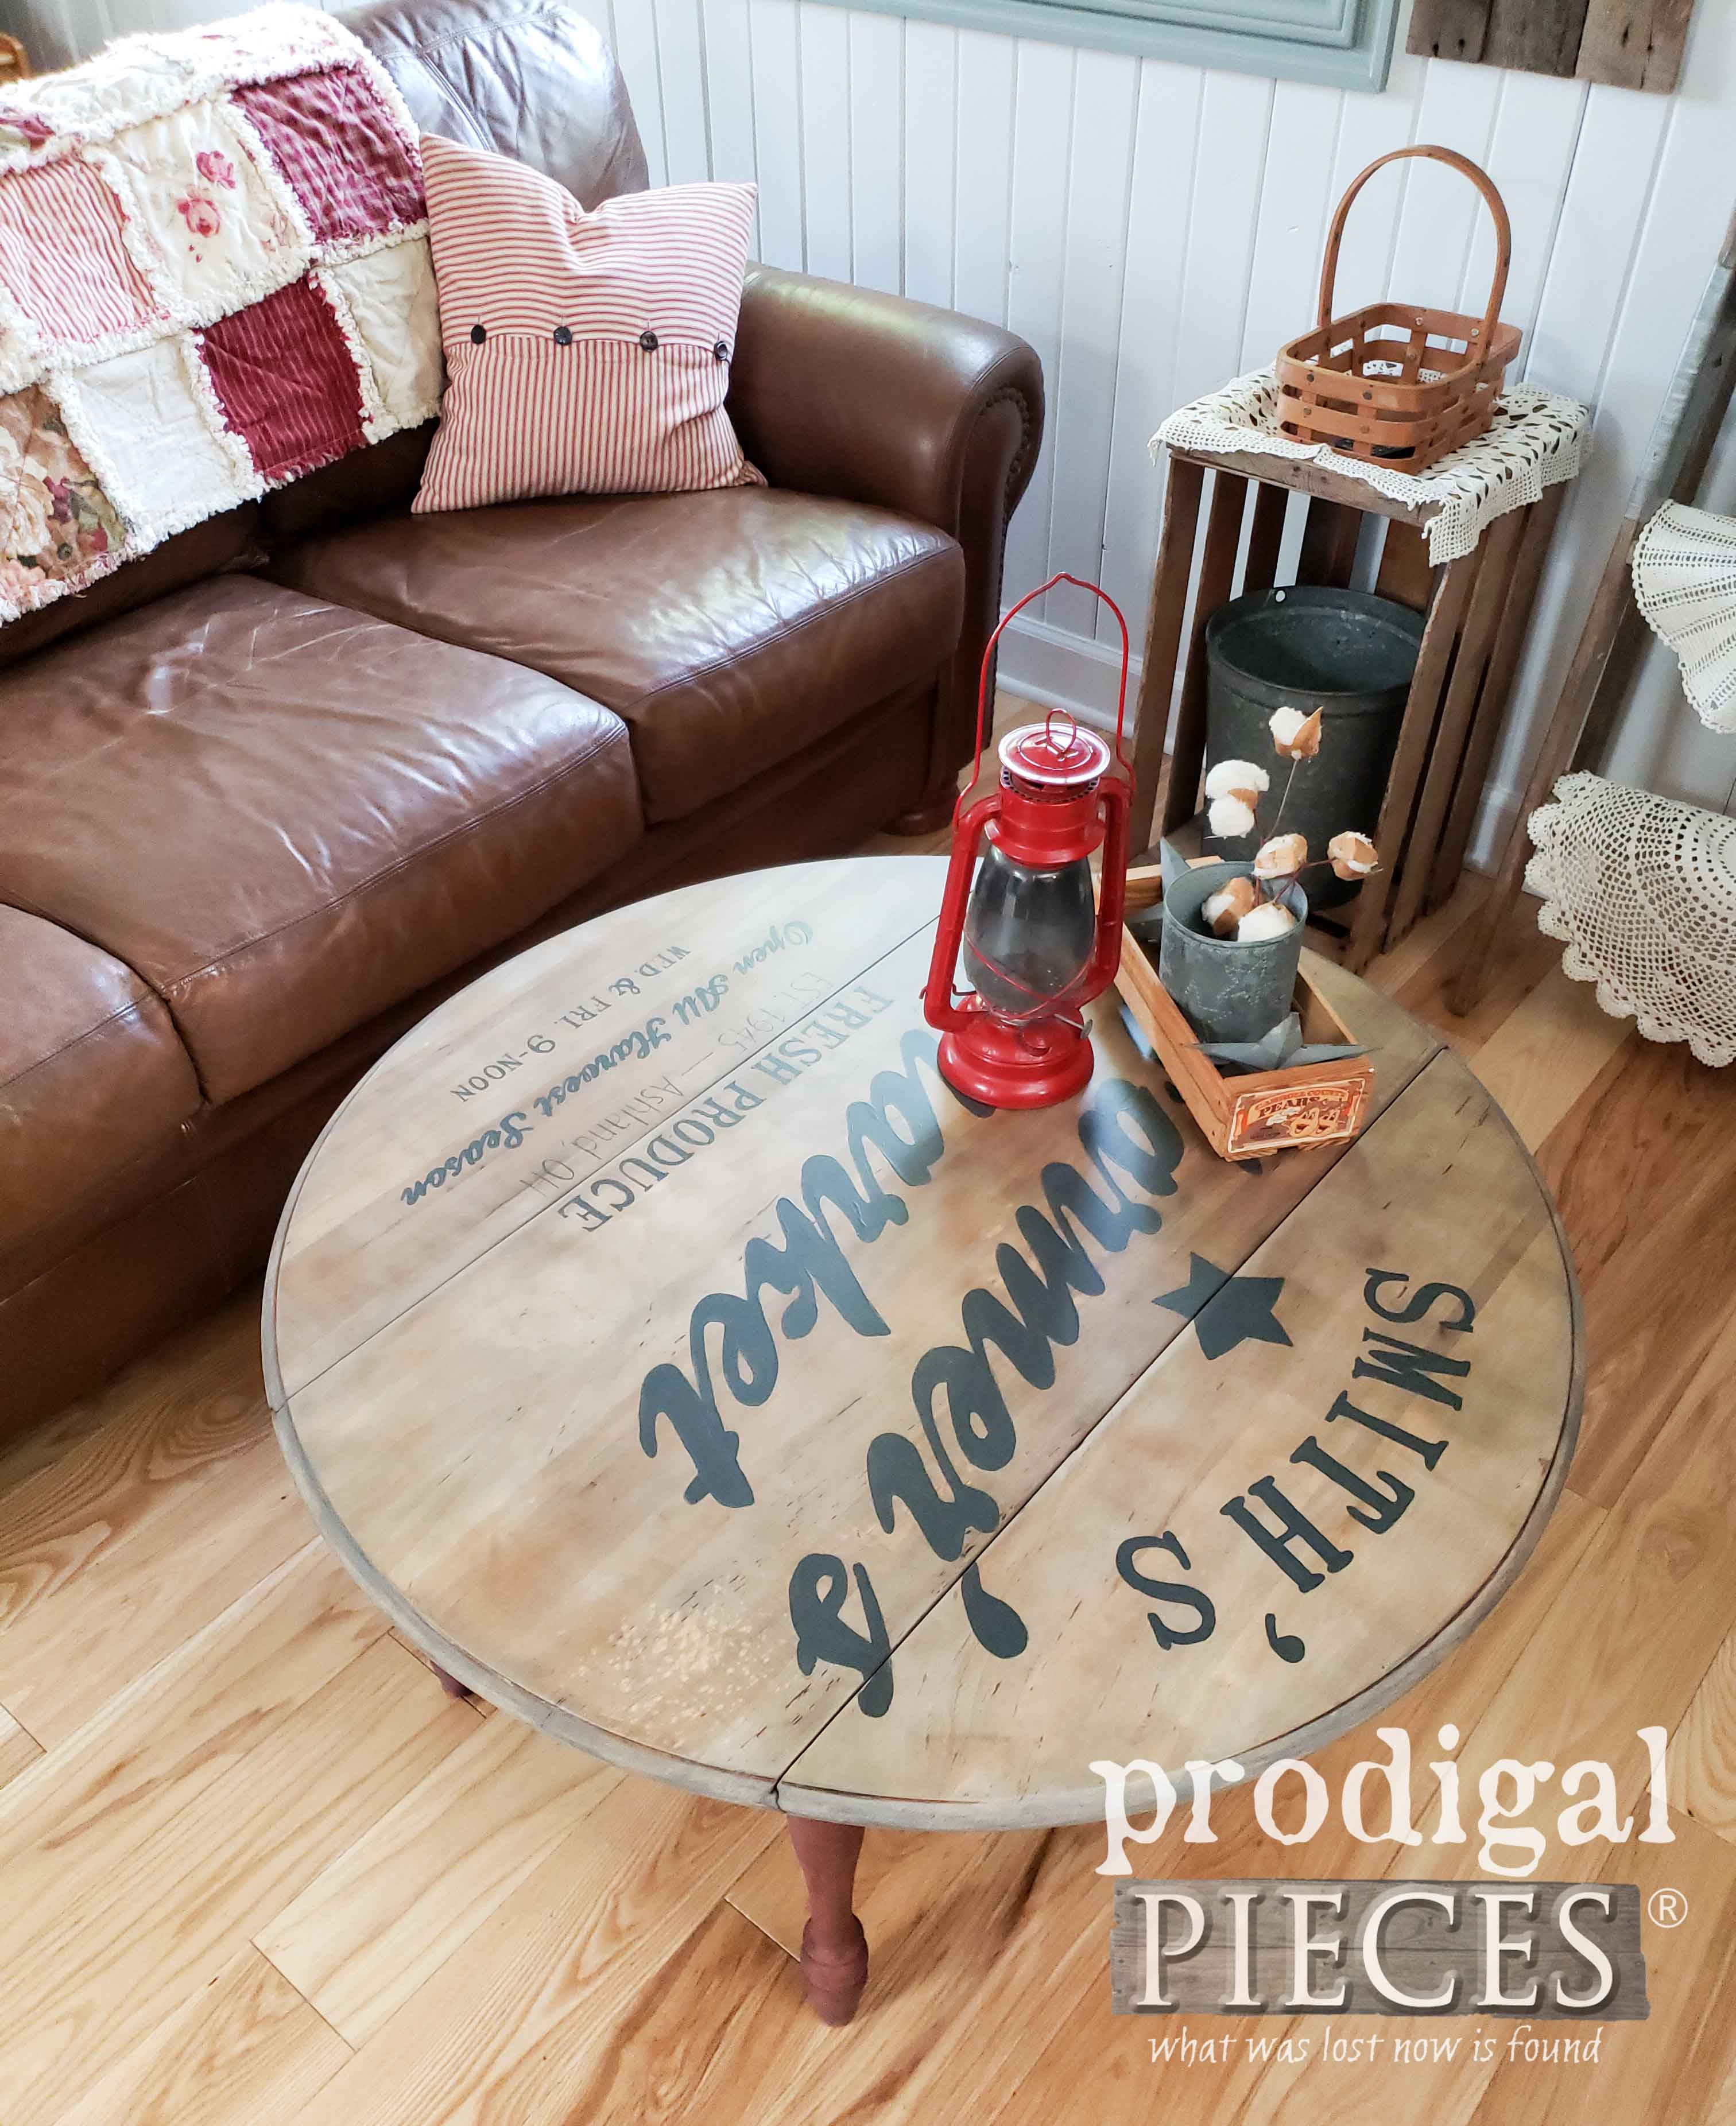 Farmhouse Coffee Table with Typography by Larissa of Prodigal Pieces | prodigalpiceces.com #prodigalpieces #diy #furniture #farmhouse #handmade #home #homedecor